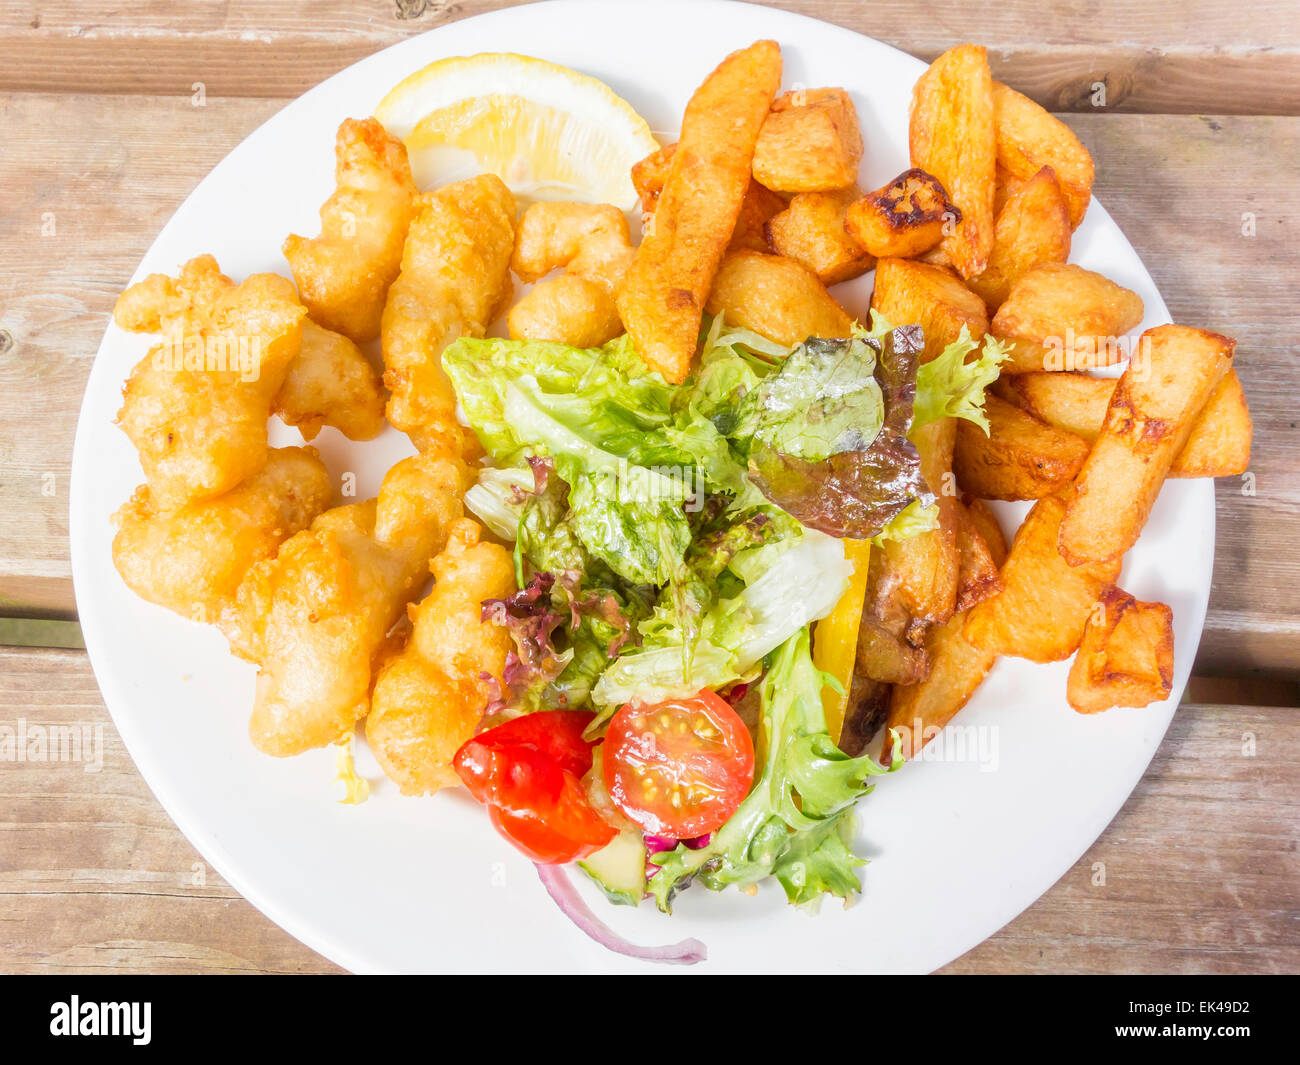 A simple pub lunch of breaded Scampi with lemon, salad garnish and chips - Stock Image